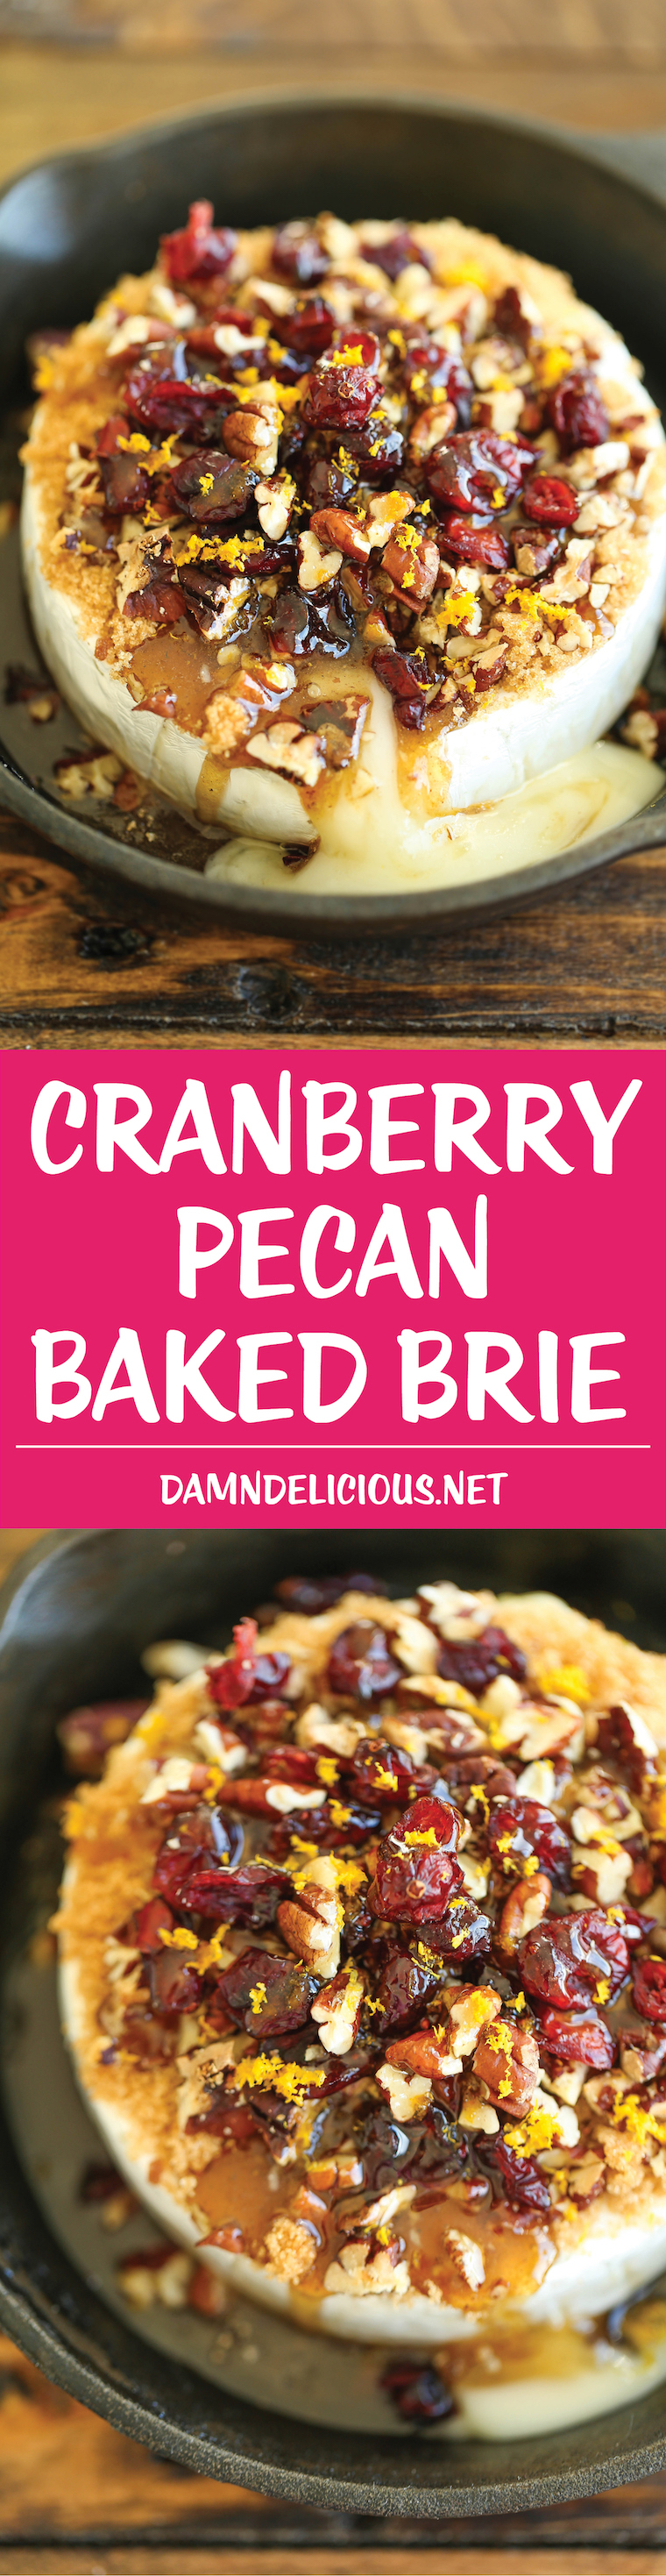 Cranberry Pecan Baked Brie -Simple, elegant and an absolute crowd-pleaser! Best of all, this is one of the easiest appetizers EVER with only 5-10 min prep!